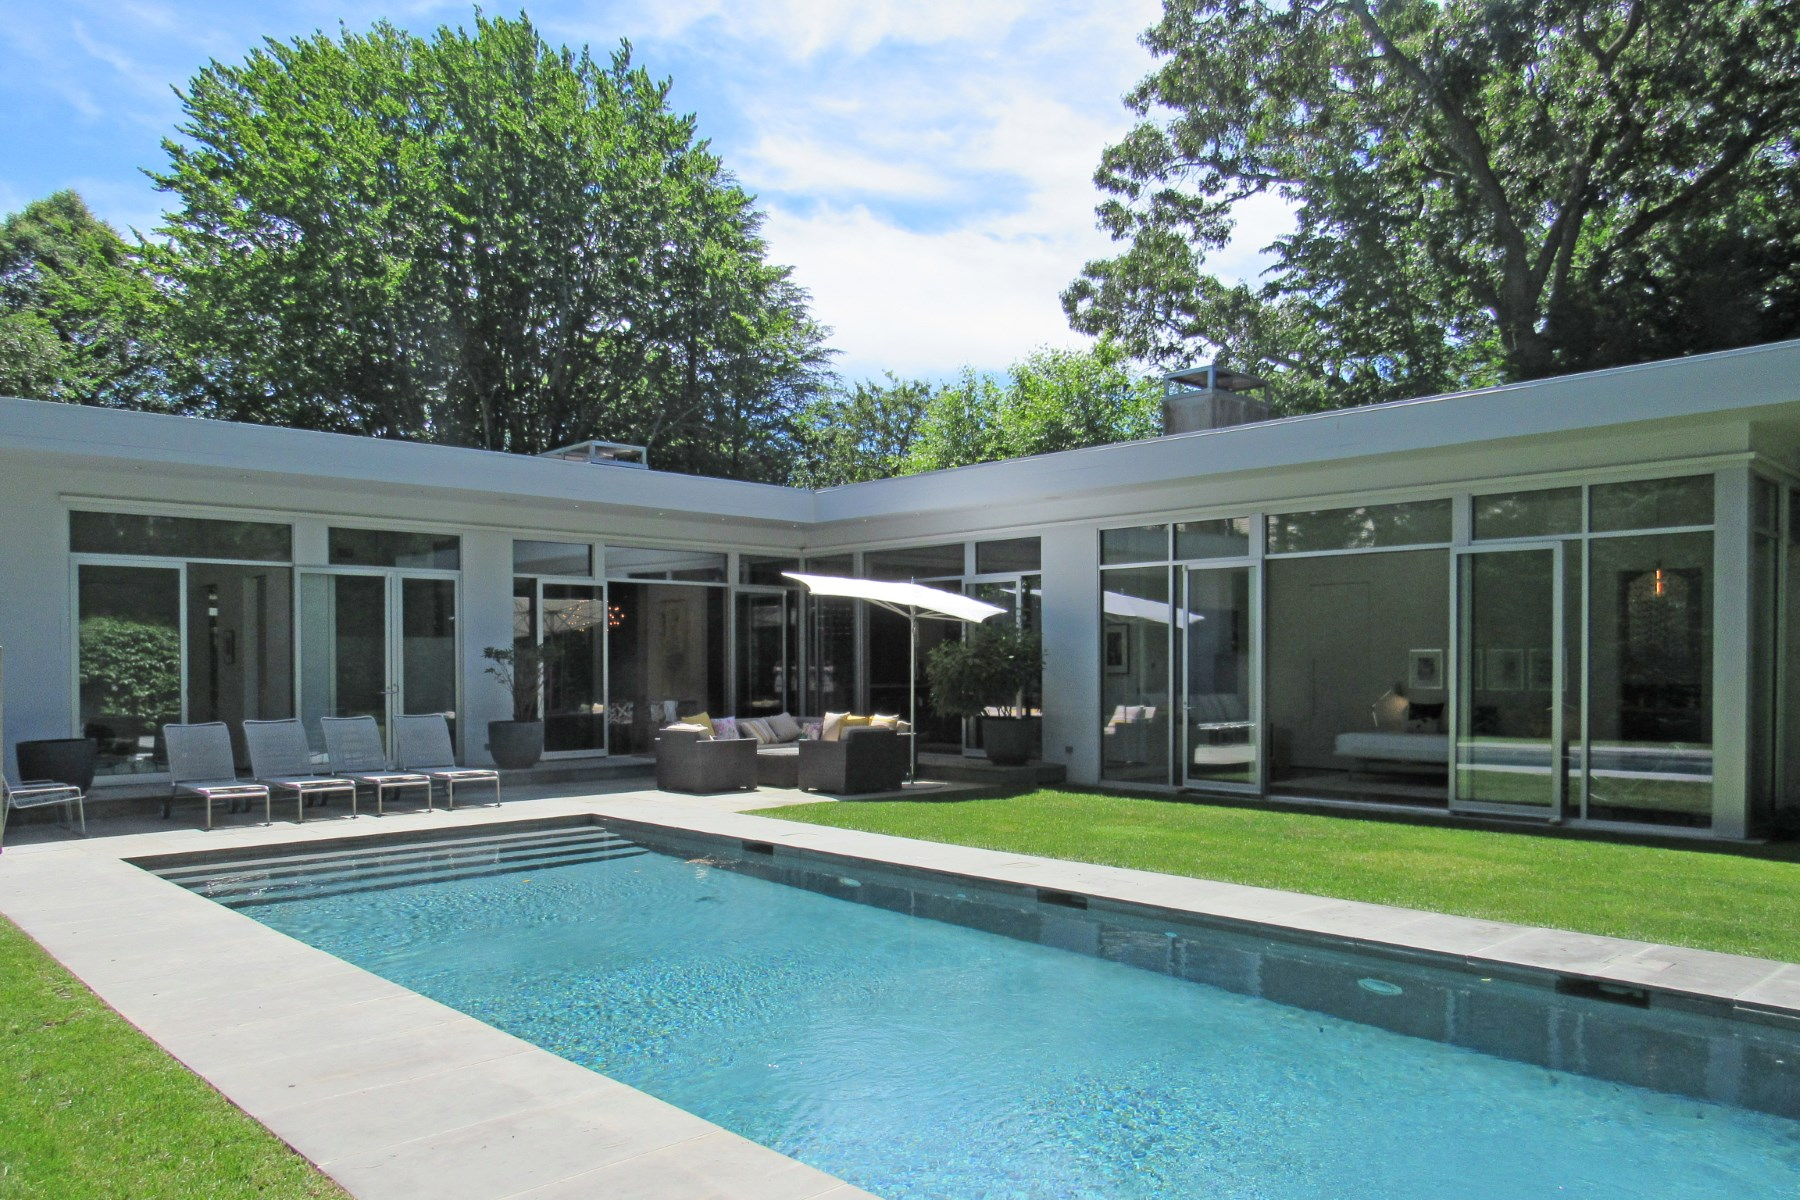 Villa per Vendita alle ore Exquisitely Designed Modern 31 Palma Terrace East Hampton Village, East Hampton, New York, 11937 Stati Uniti